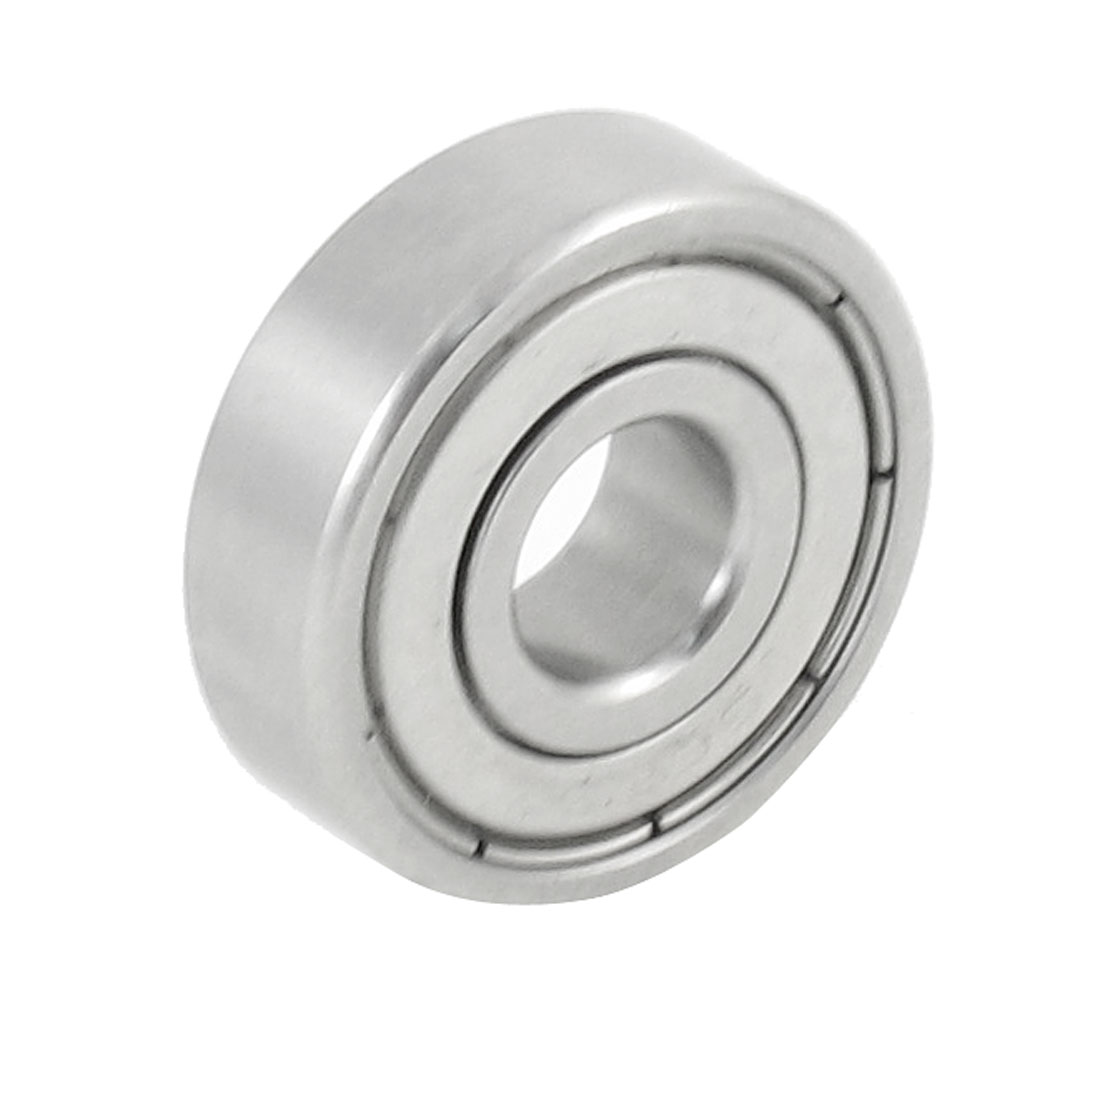 Stainless Steel 26mm x 9mm x 8mm Sealed Deep Groove Ball Bearing